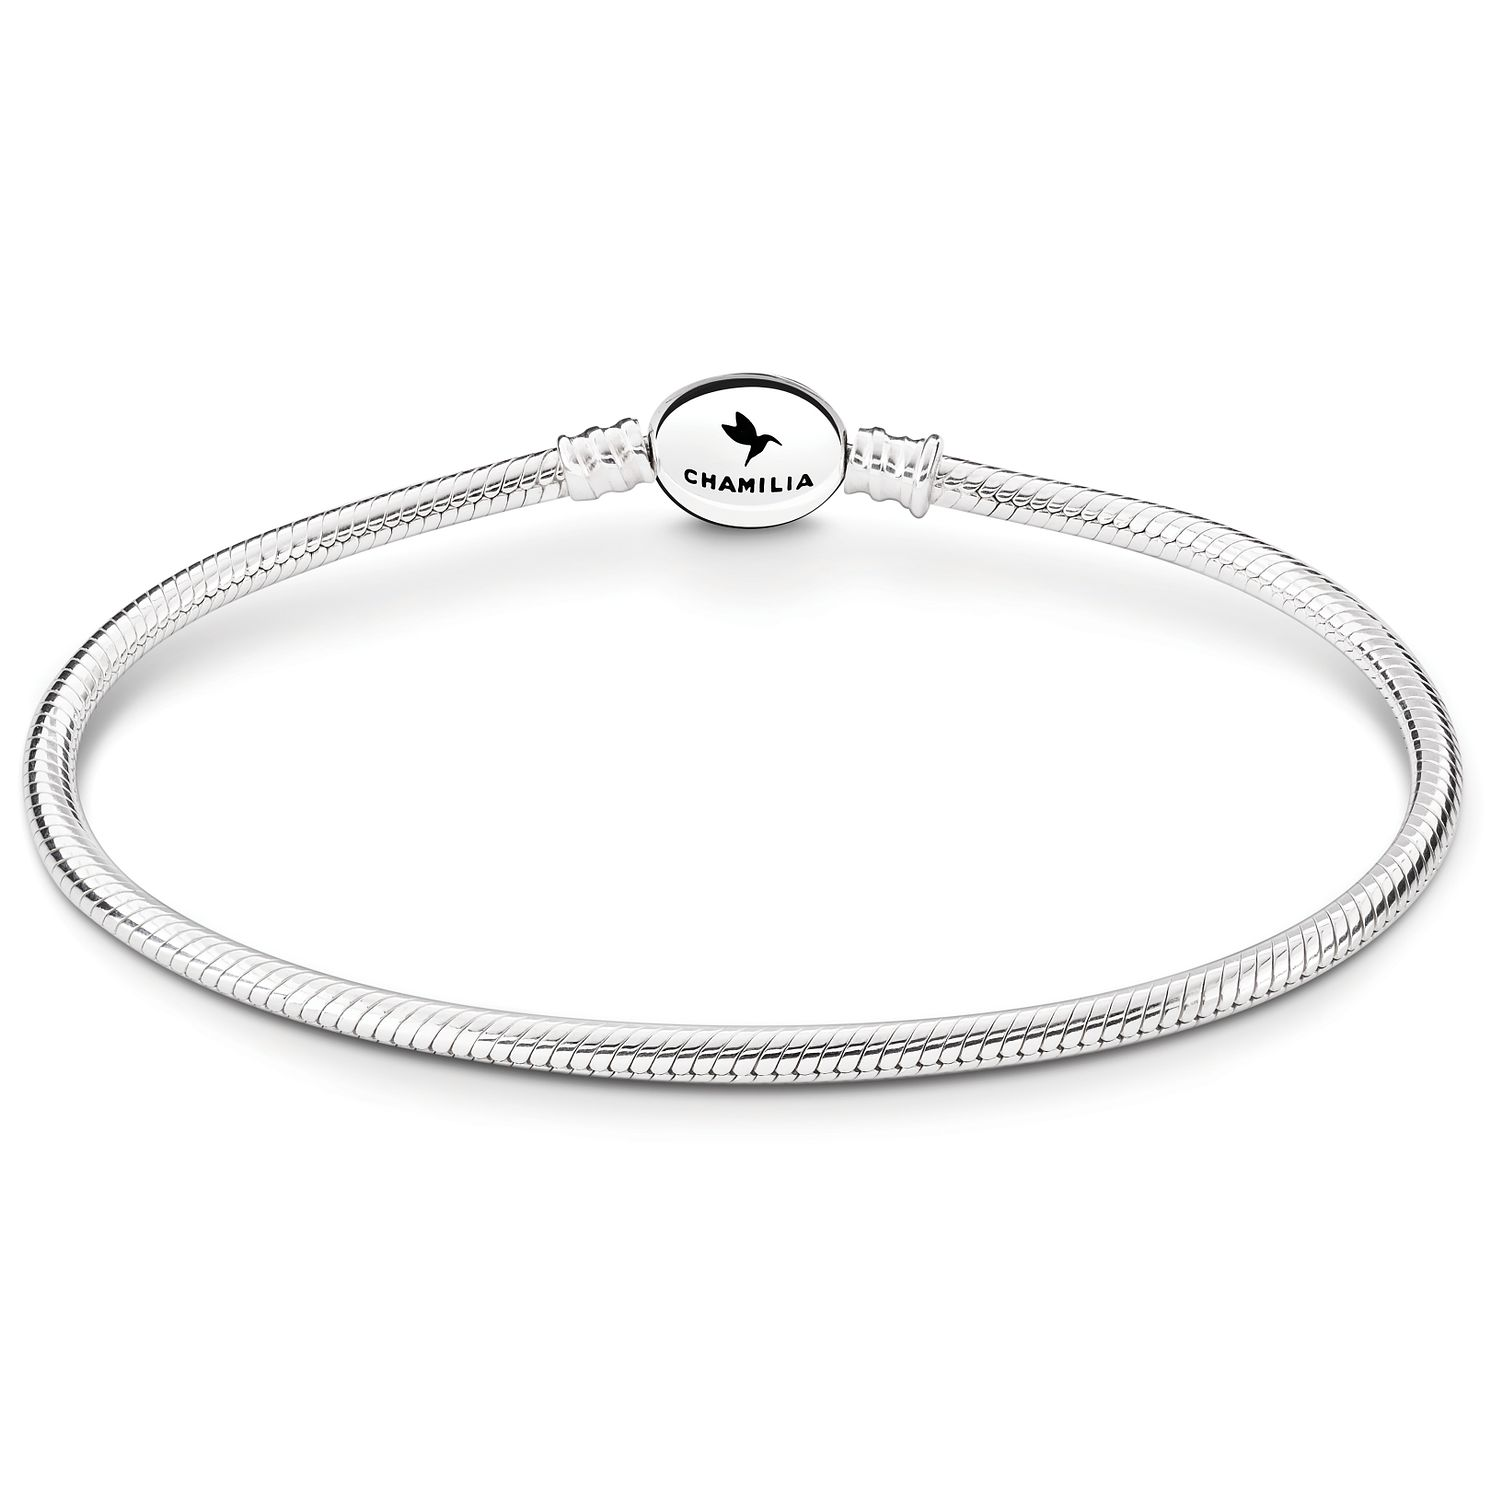 edges silver diamond masculine bracelet sterling a giving to rope the cutting more jewellery heavy solid cut